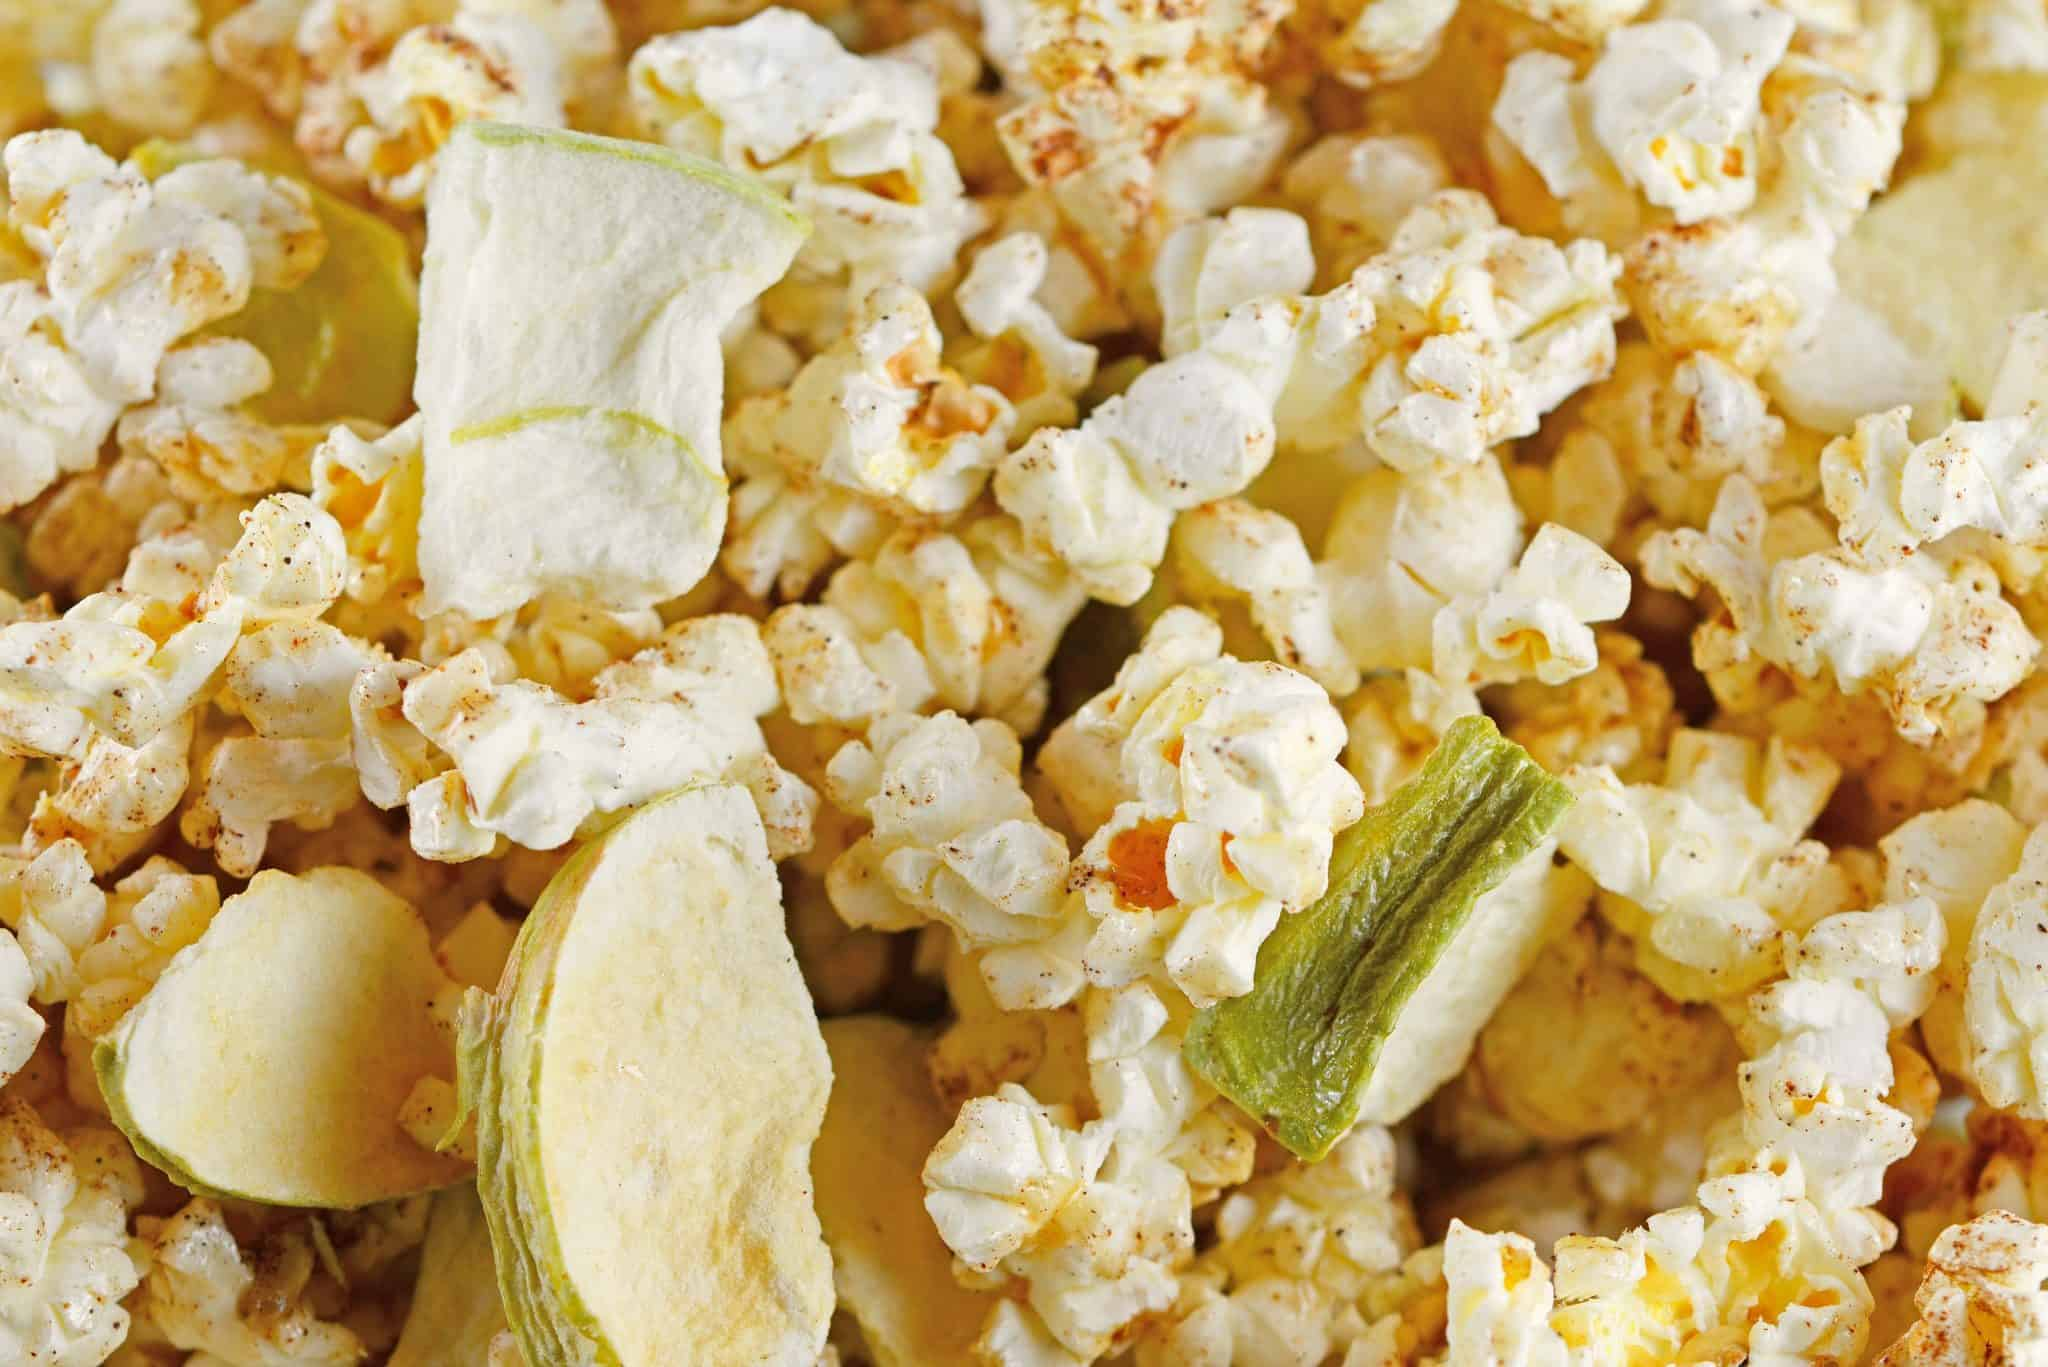 Apple Cinnamon Popcorn is a great way to enjoy popcorn as a dessert or snack. Tossed with apple chips, honey, cinnamon and vanilla, you will crave this popcorn seasoning every day!